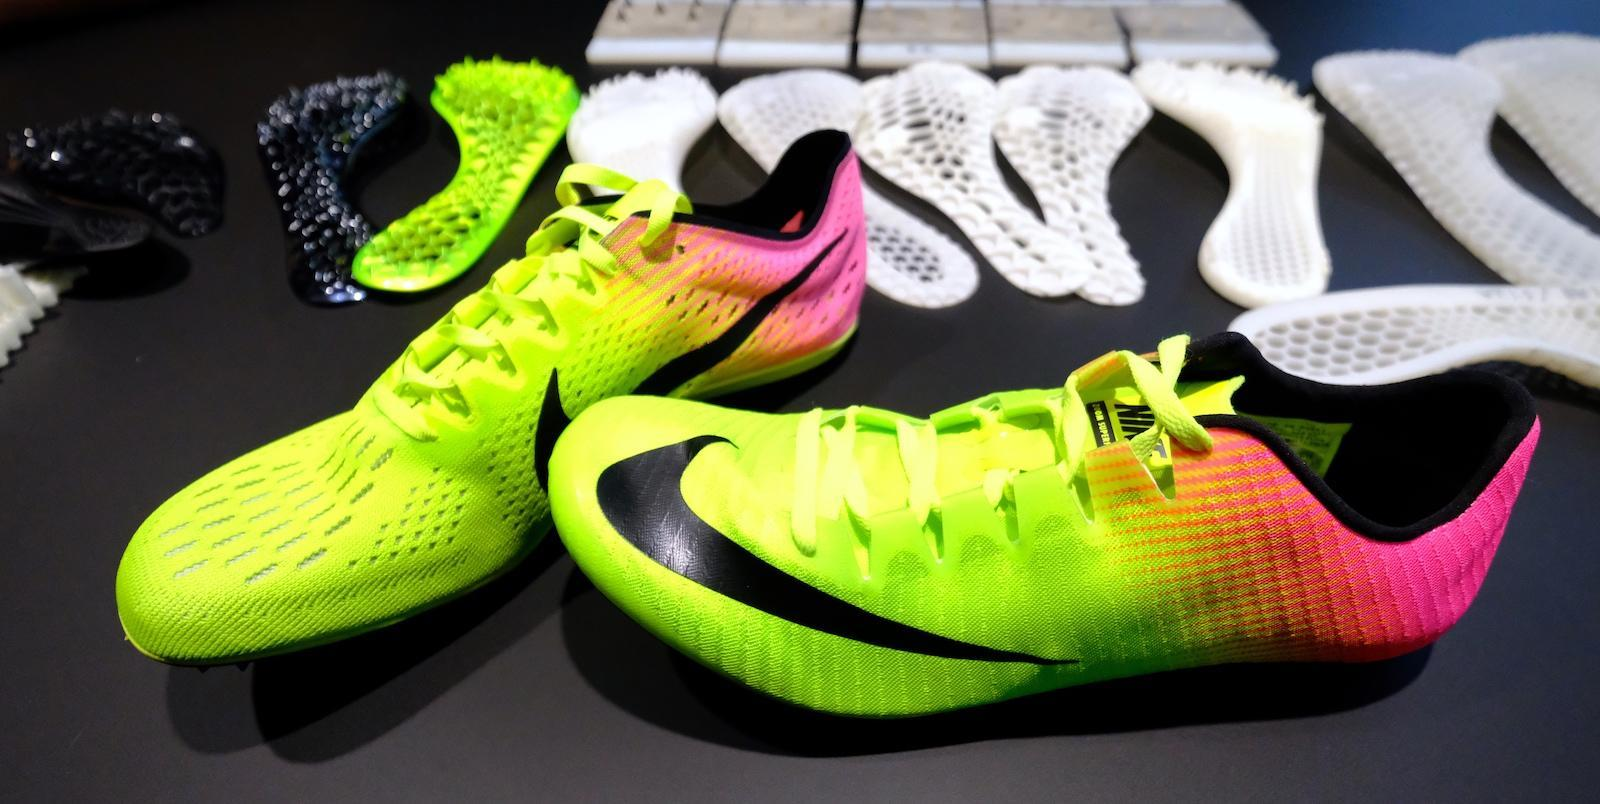 Nike used 3D printing and Olympic sprinters to design its new track shoe | Engadget